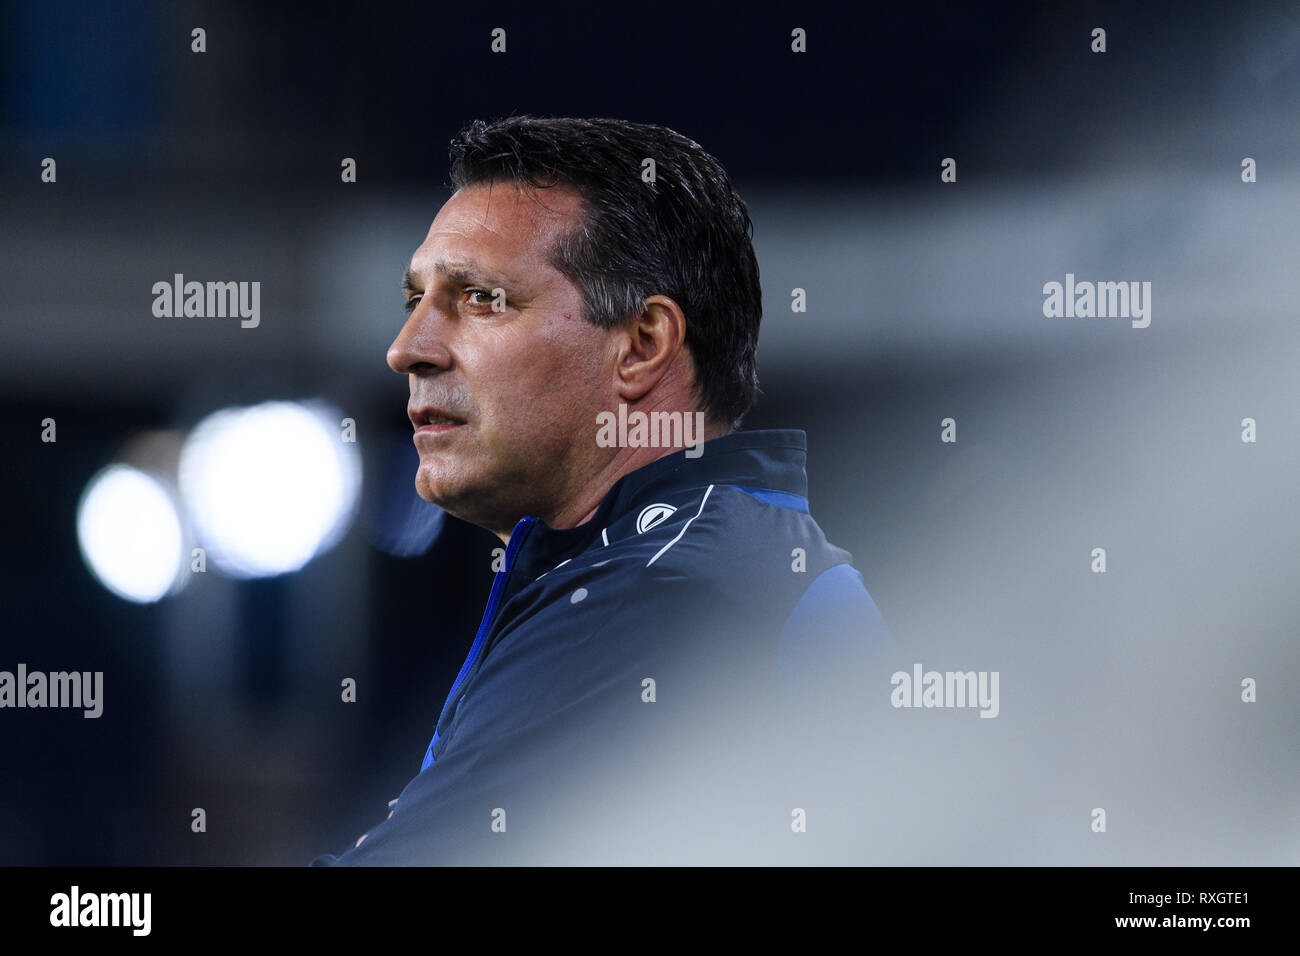 Duisburg, Deutschland. 08th Mar, 2019. Coach Alois Schwartz (KSC). GES/football/3rd league: Krefelder football club Uerdingen - Karlsruher SC, 08.03.2019 Football/Soccer: 3rd League: KFC Uerdingen vs Karlsruher SC, Duisburg, March 8, 2019 | usage worldwide Credit: dpa/Alamy Live News - Stock Image